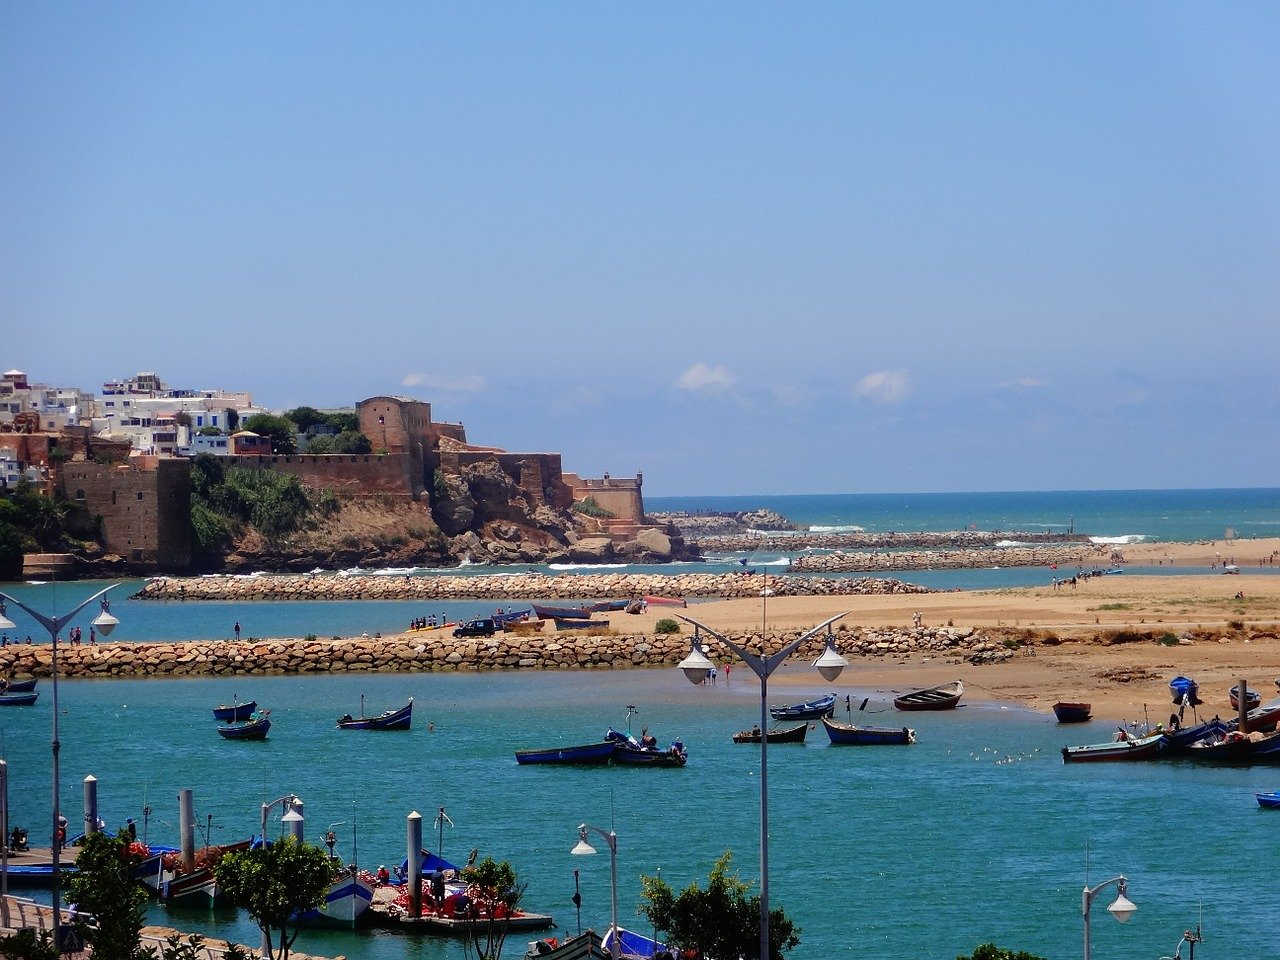 Rabat is Morocco's capital and one of the best cities to visit in Morocco. Discover more unmissable cities in Morocco from this article